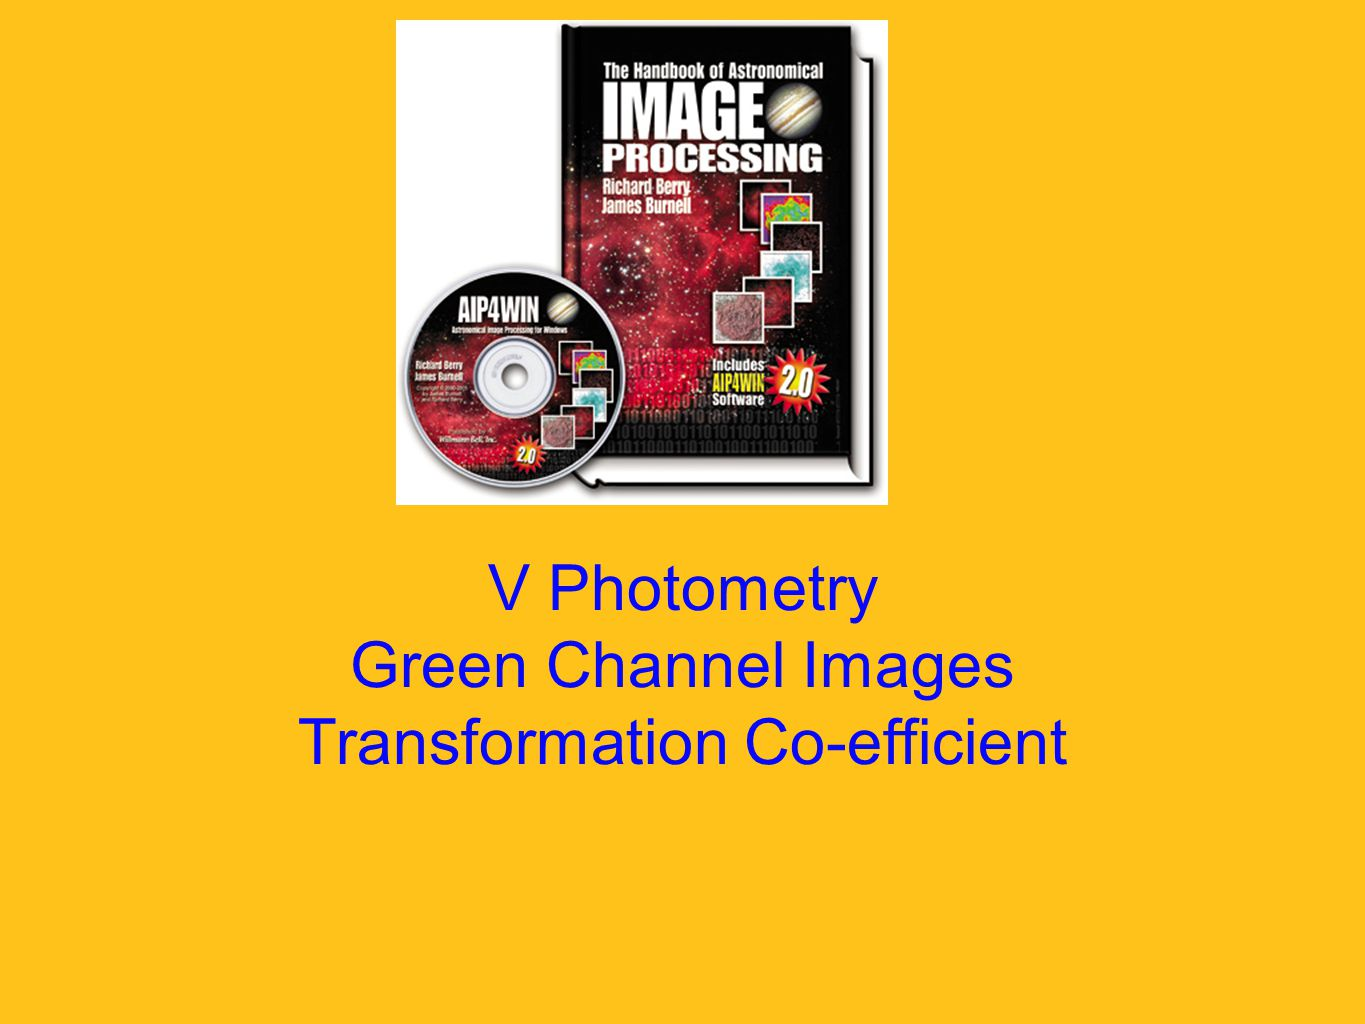 V Photometry Green Channel Images Transformation Co-efficient